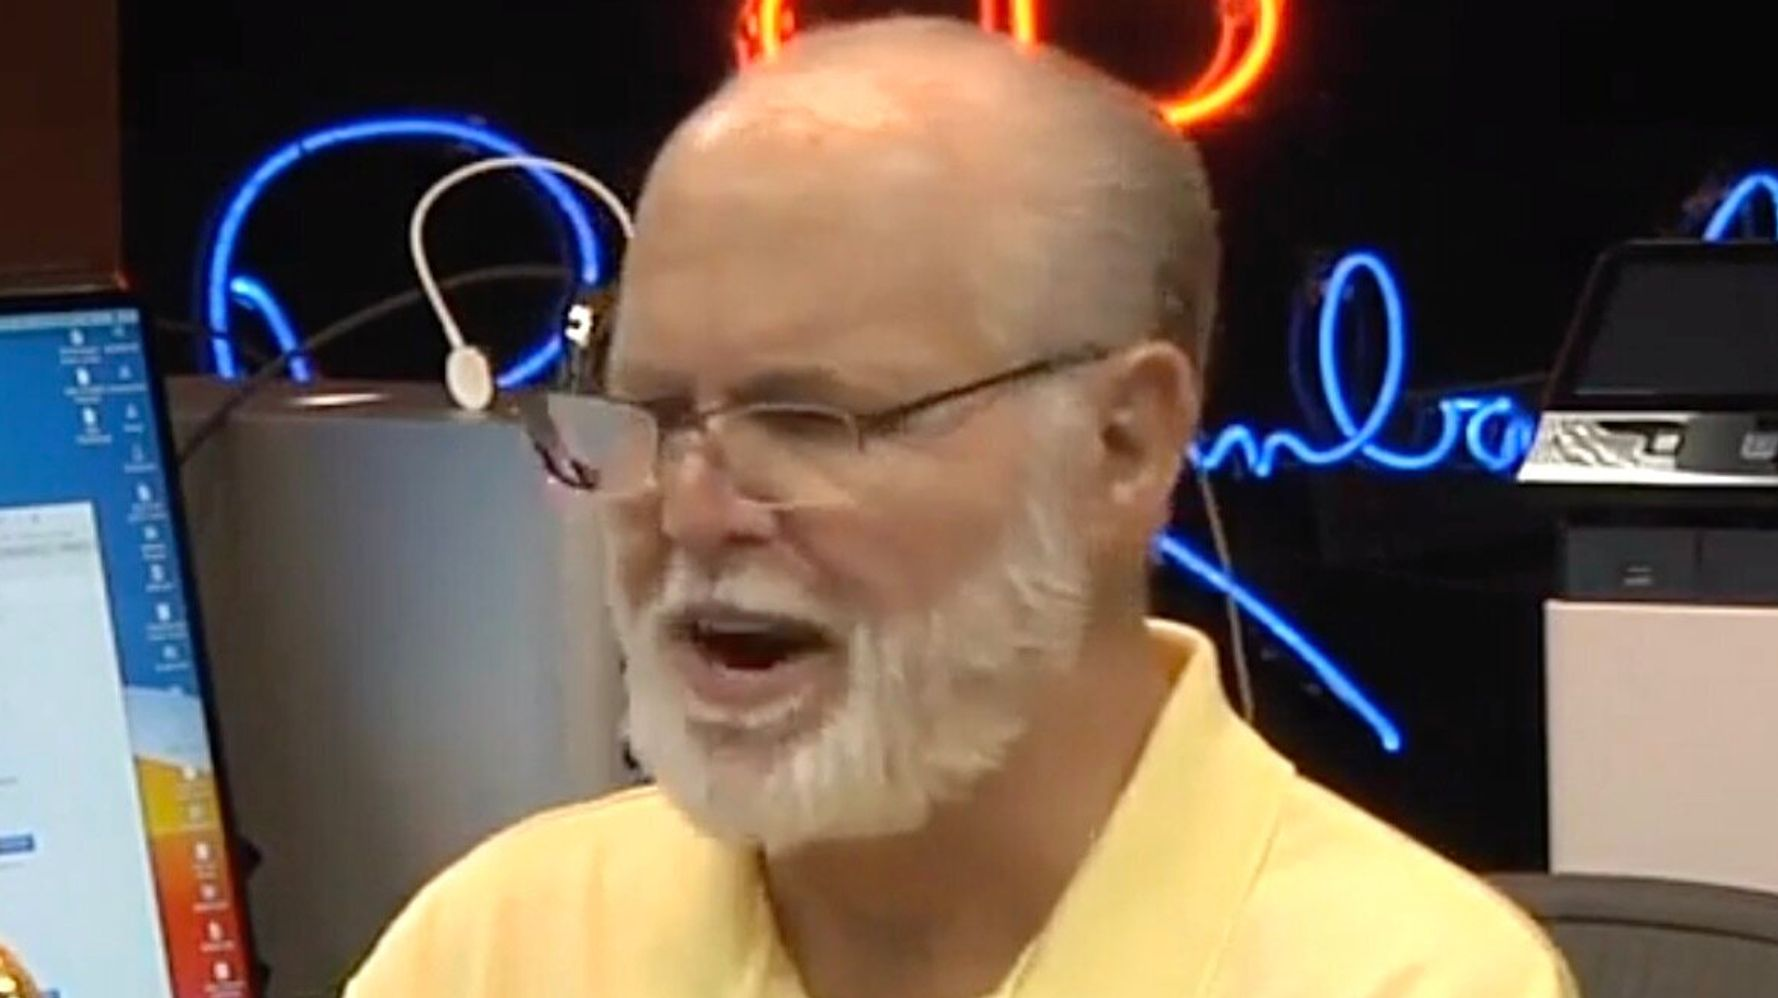 Rush Limbaugh Gets Extra Weird, References Cannibalism In Coronavirus Rant